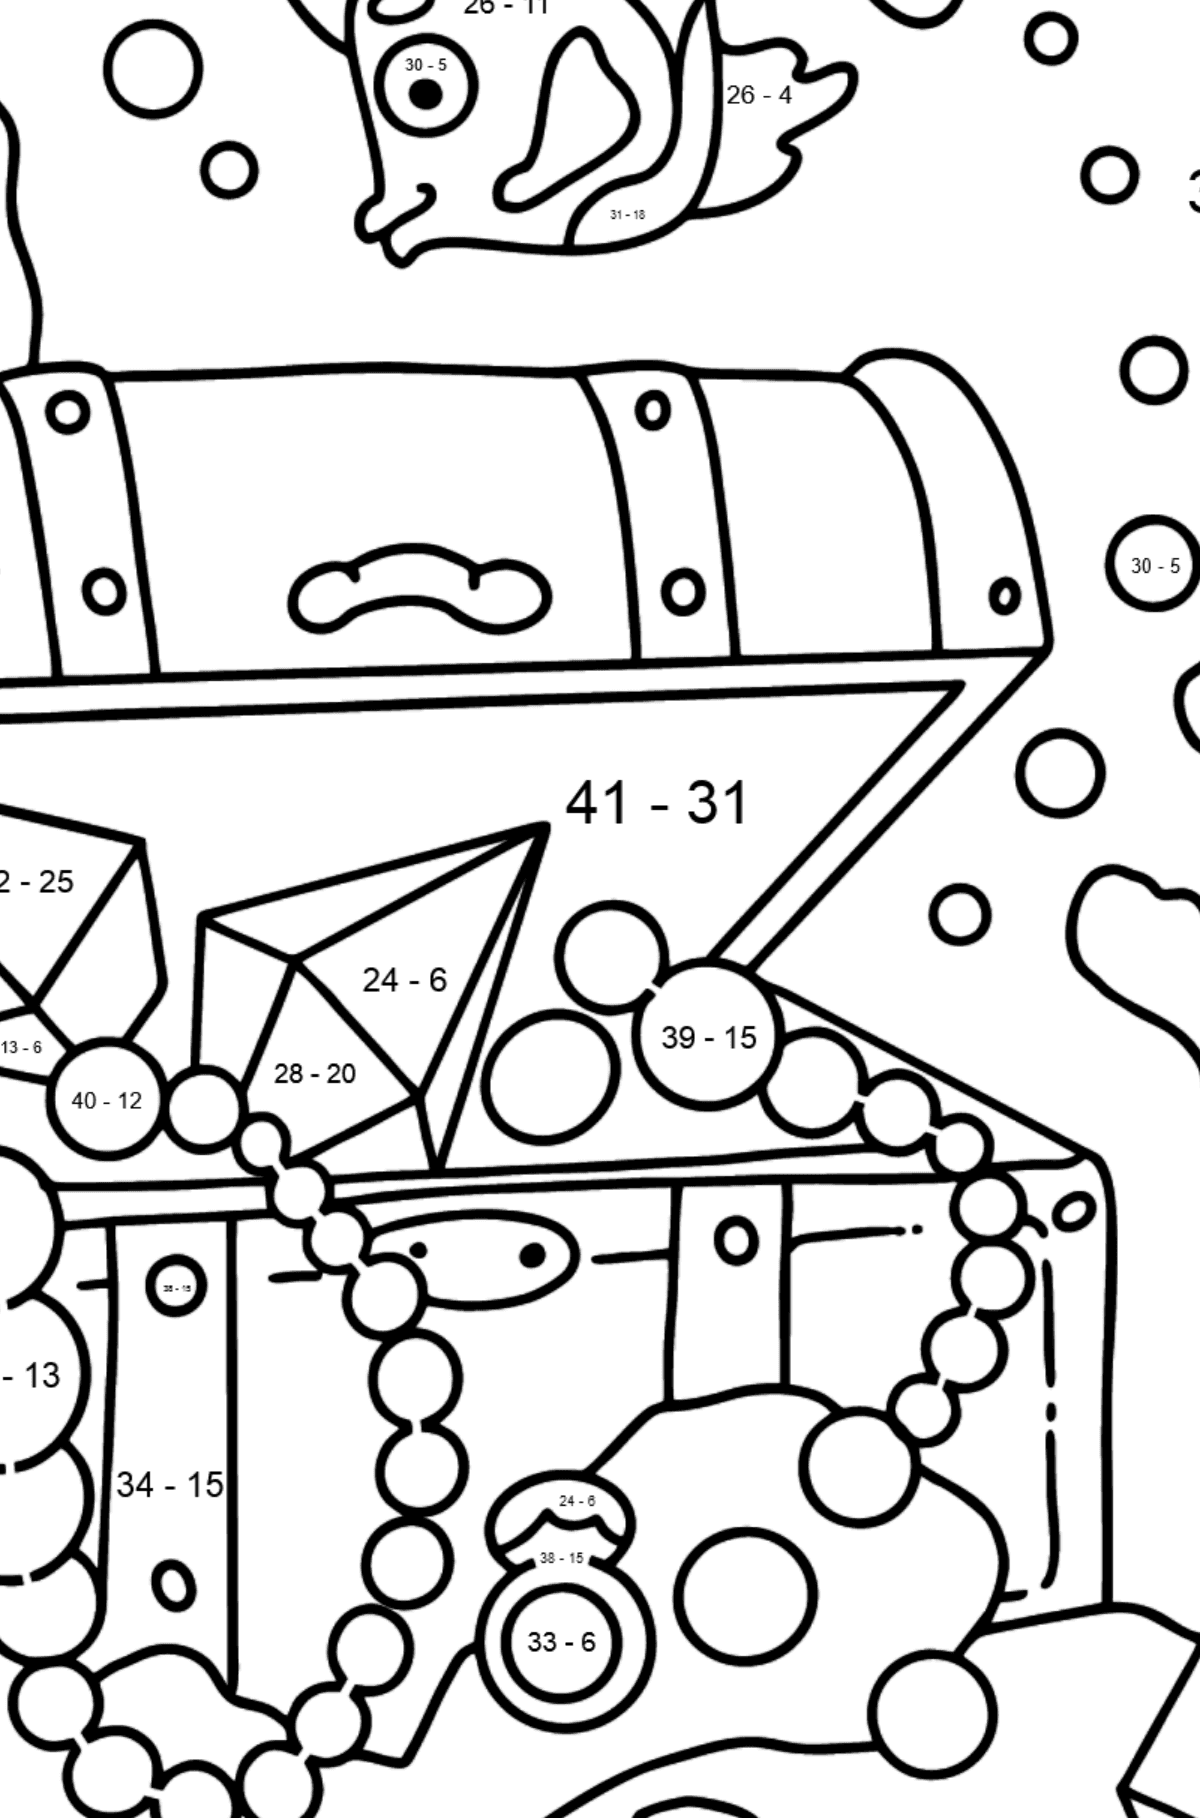 Coloring Page - A Fish is Looking for a Treasure - Math Coloring - Subtraction for Kids